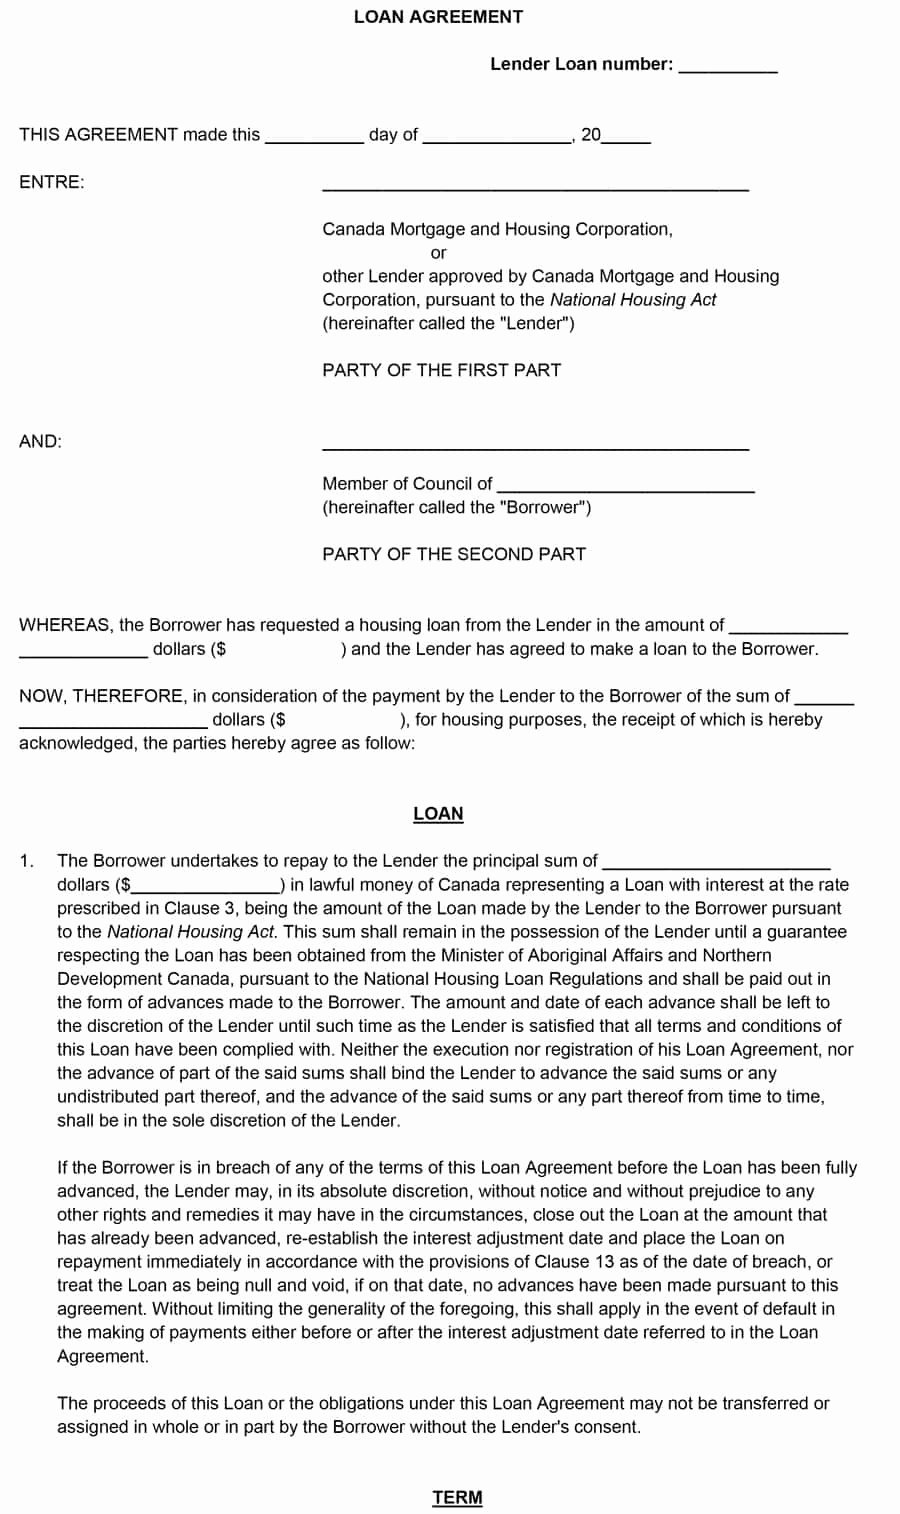 Loan form Template Lovely 40 Free Loan Agreement Templates [word & Pdf] Template Lab